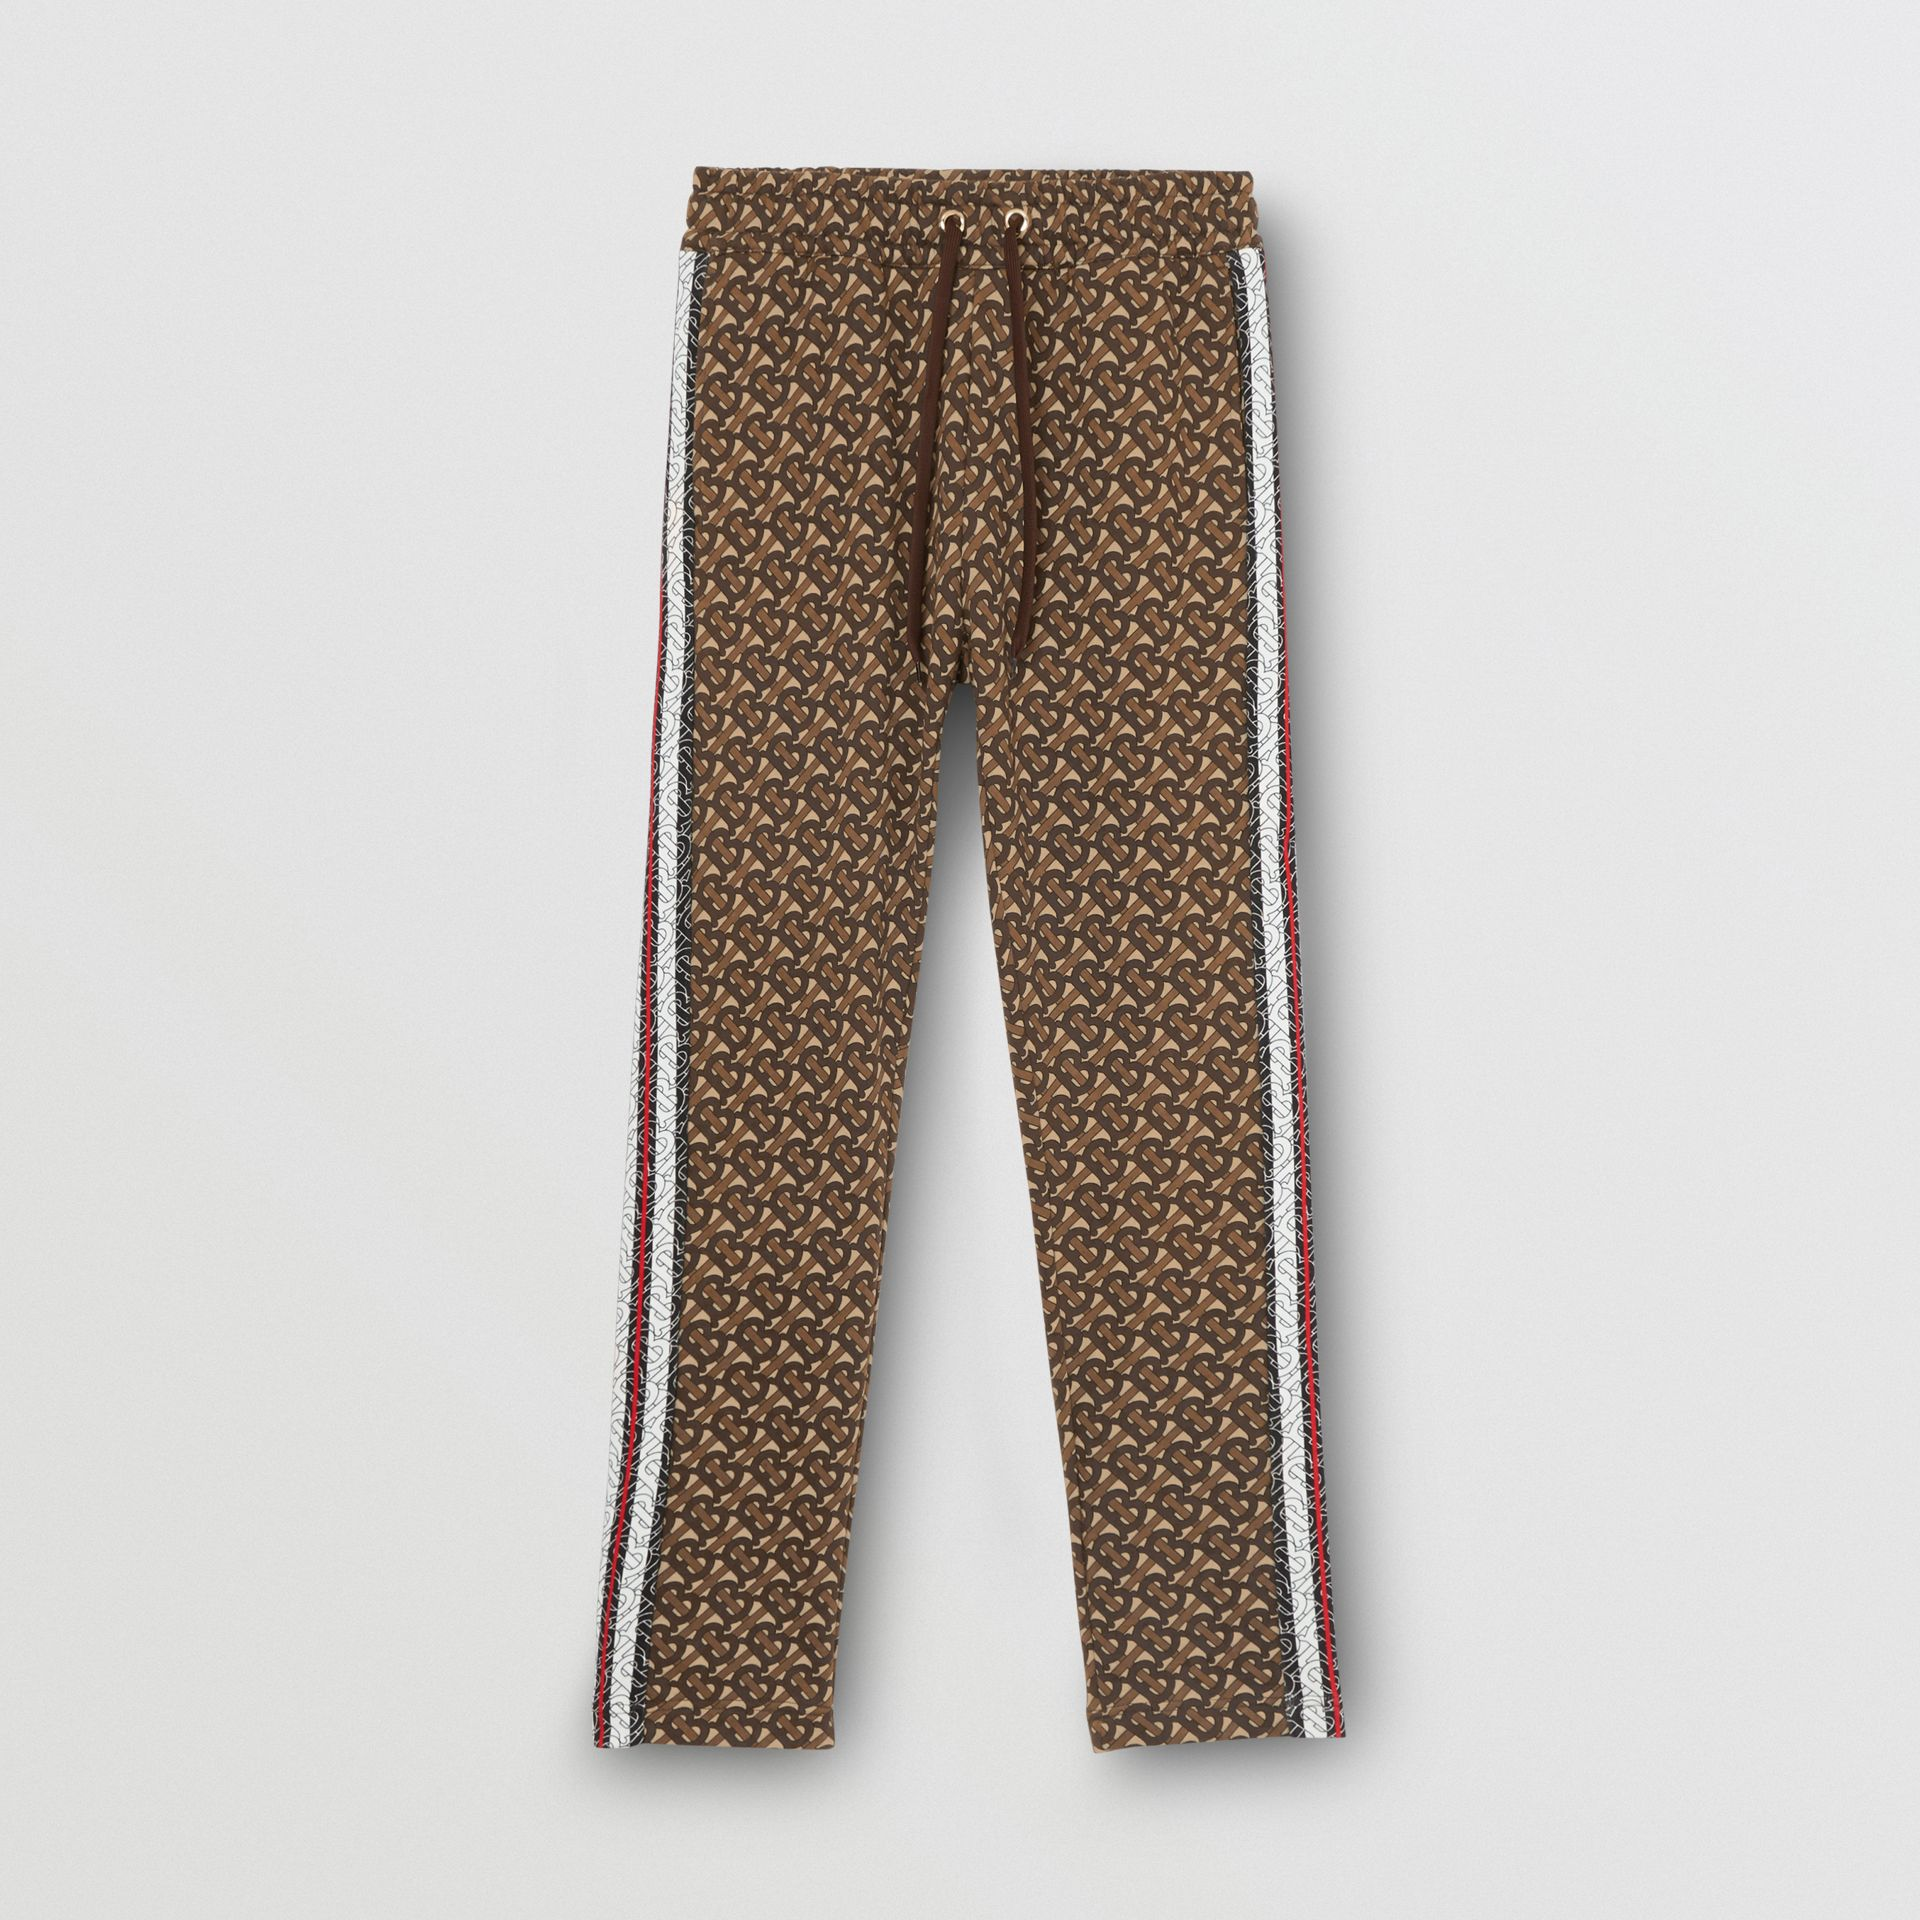 Monogram Stripe Print Cotton Trackpants in Bridle Brown - Women | Burberry - gallery image 2